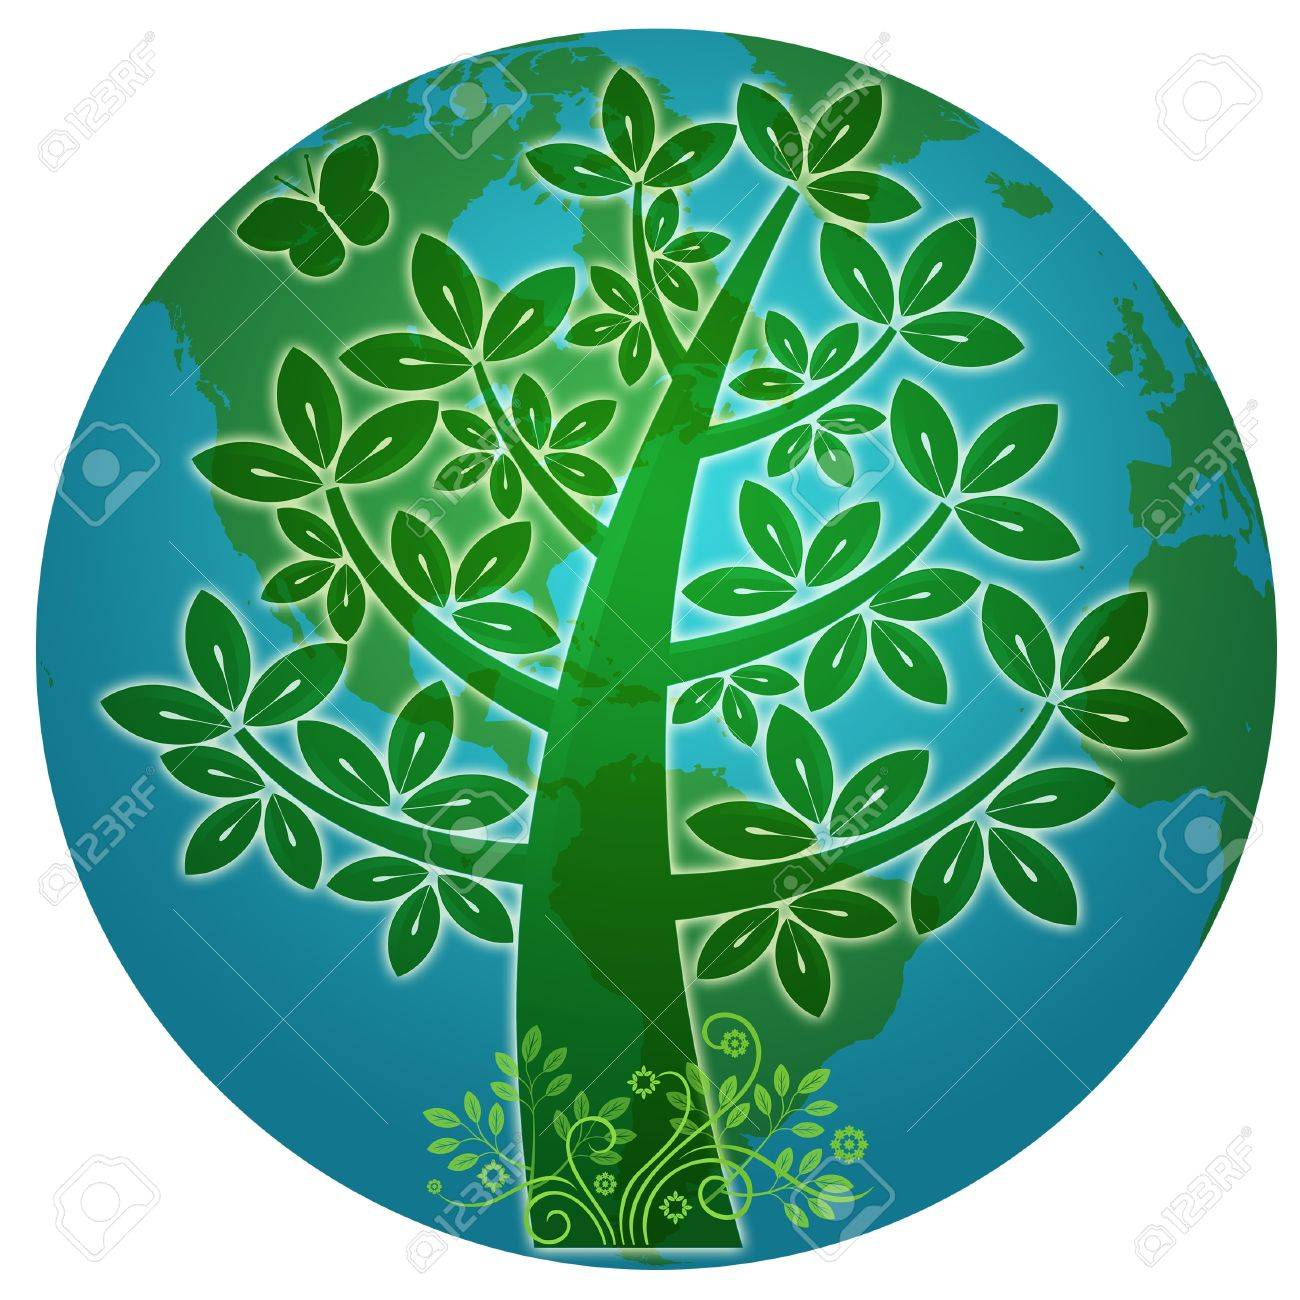 Blue Planet with Abstract Eco Tree Silhouette Illustration Stock Illustration - 8994908